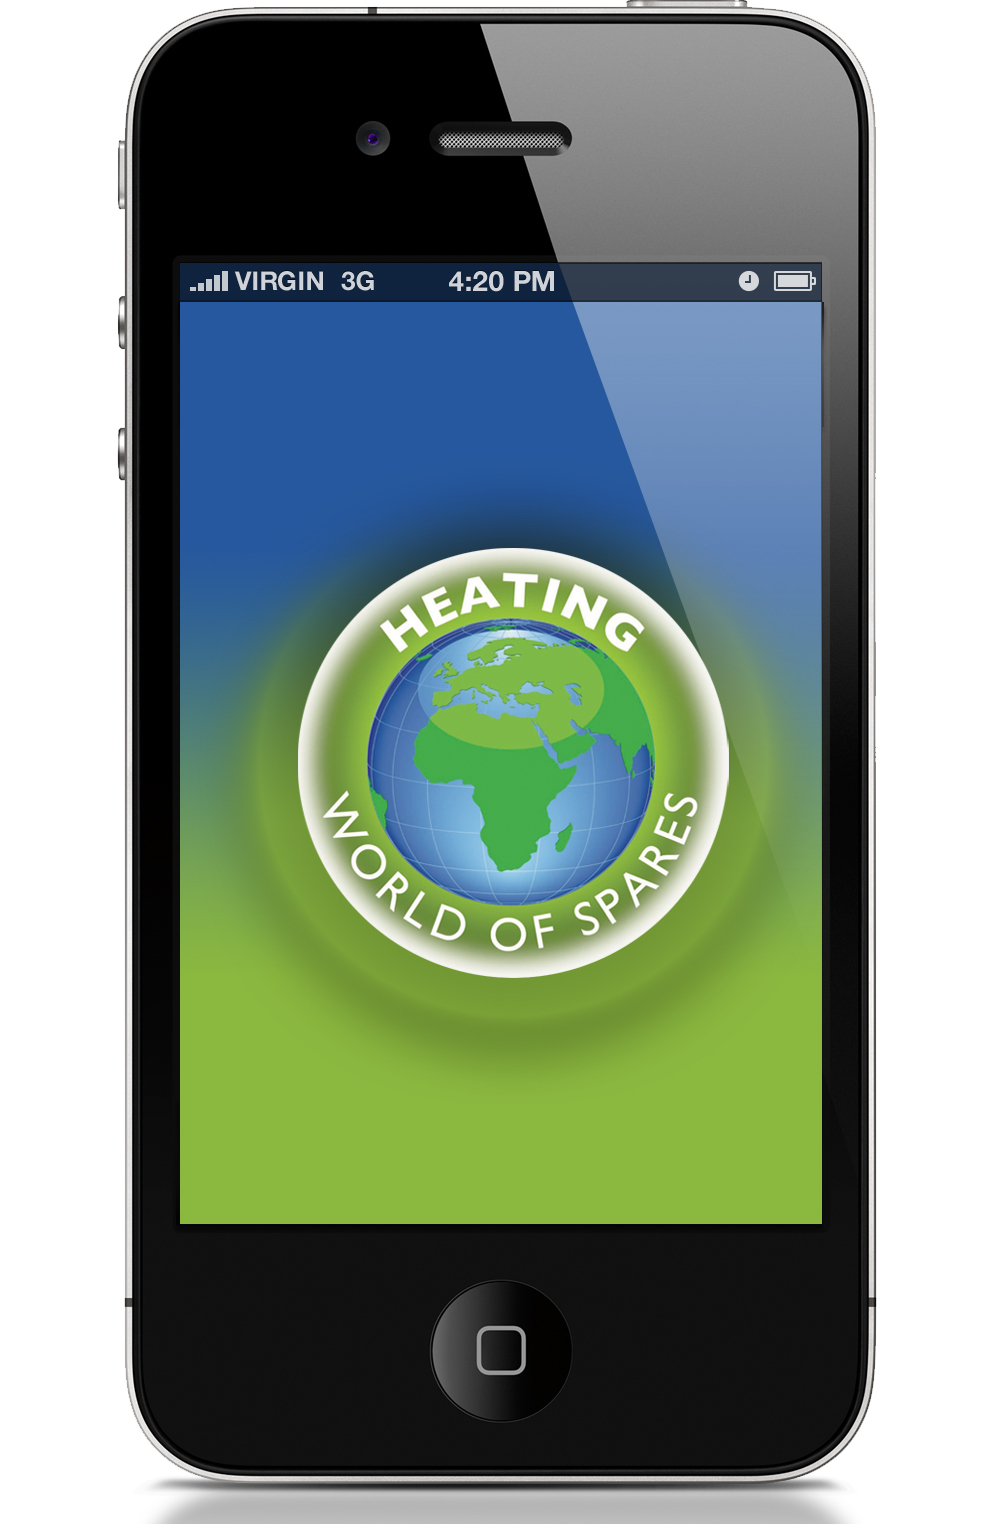 new app launchedheating world of spares | oil installer